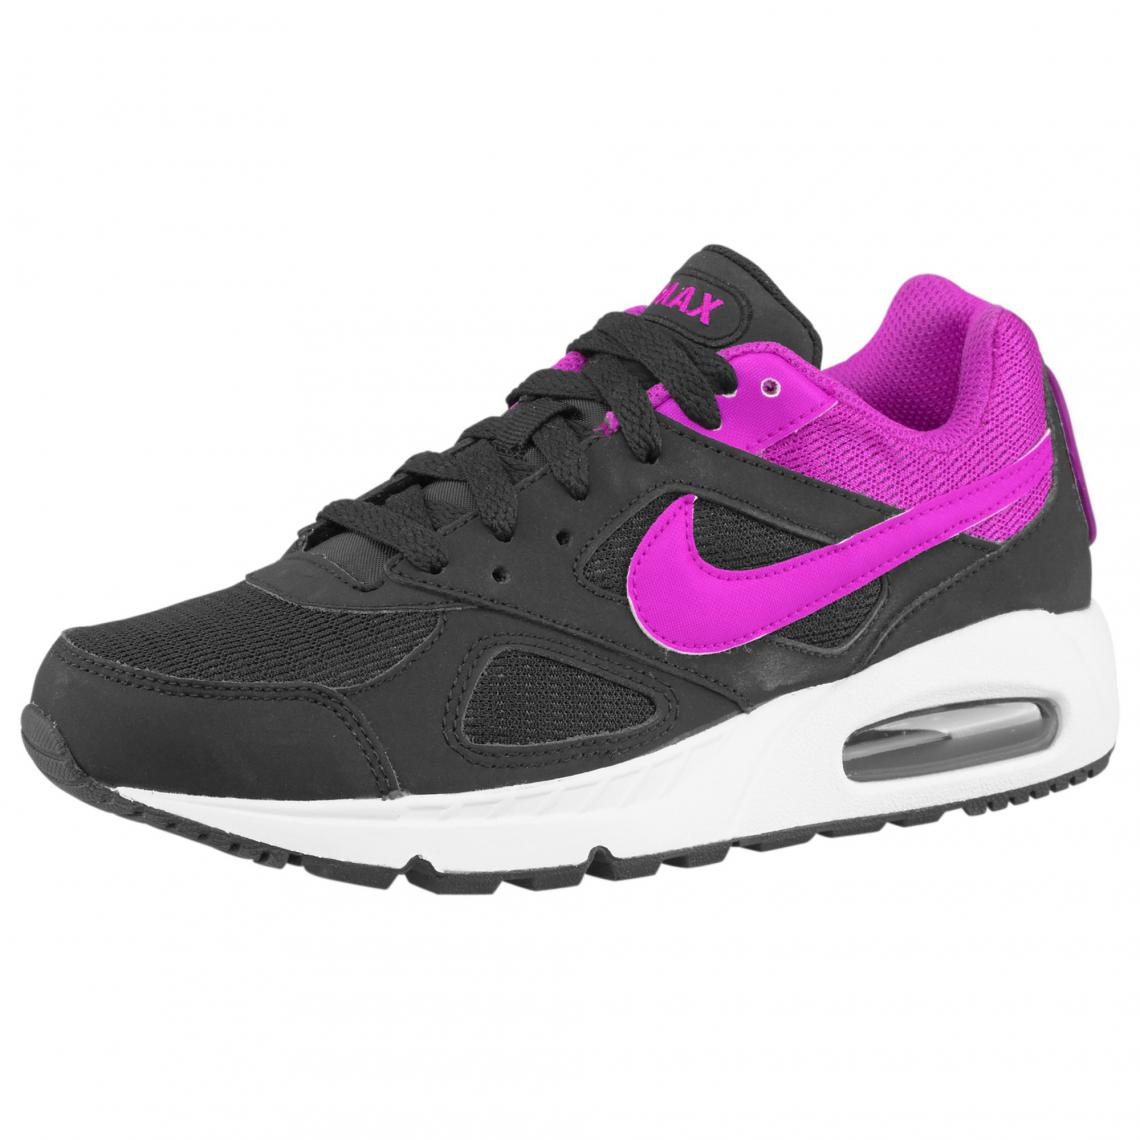 innovative design bcb77 0b7f8 Chaussures Nike Air Max - Noir Rose Nike Femme